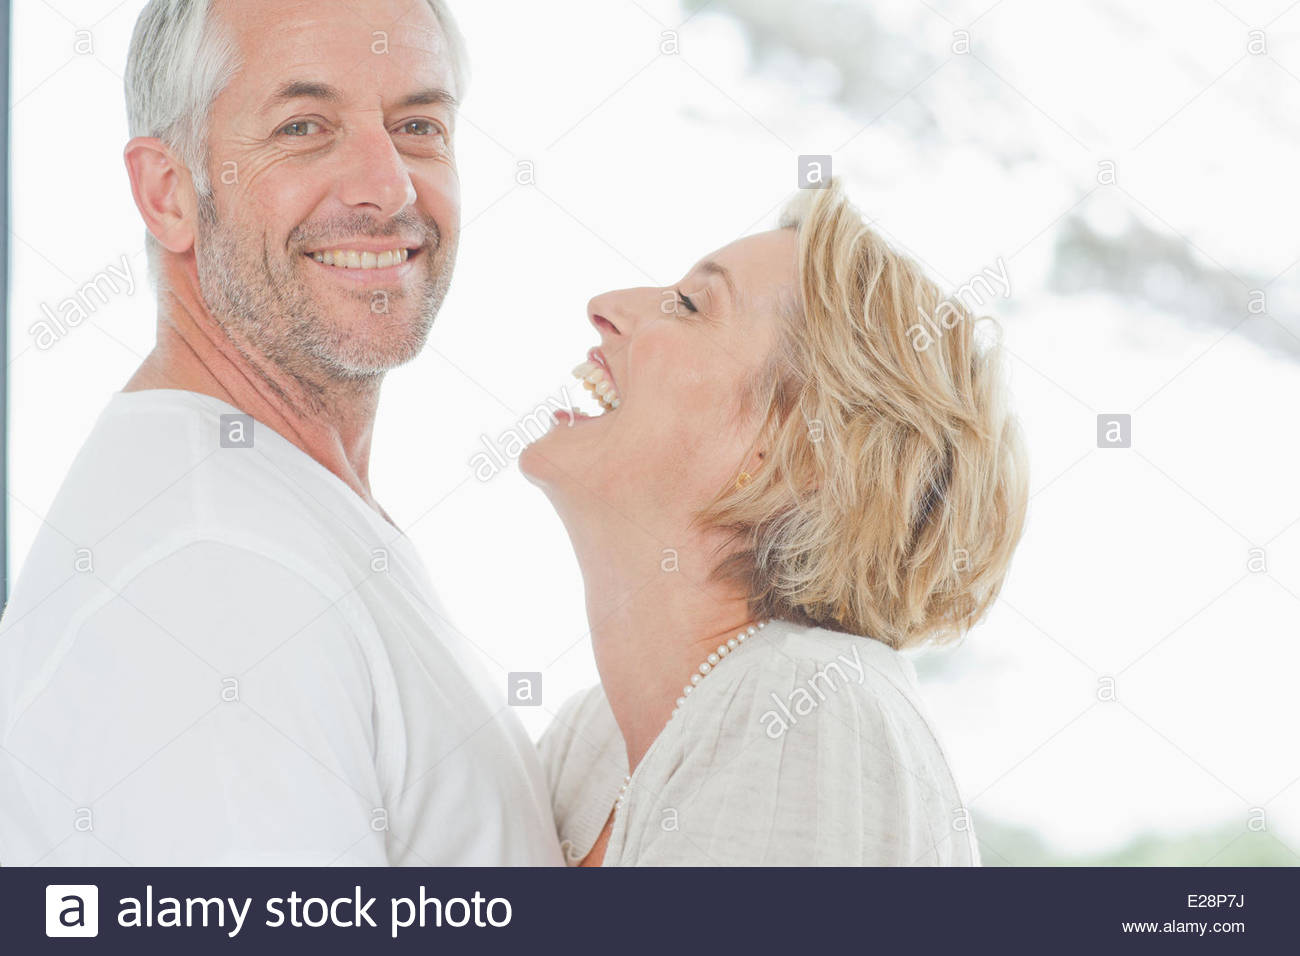 Mature couple laughing together - Stock Image